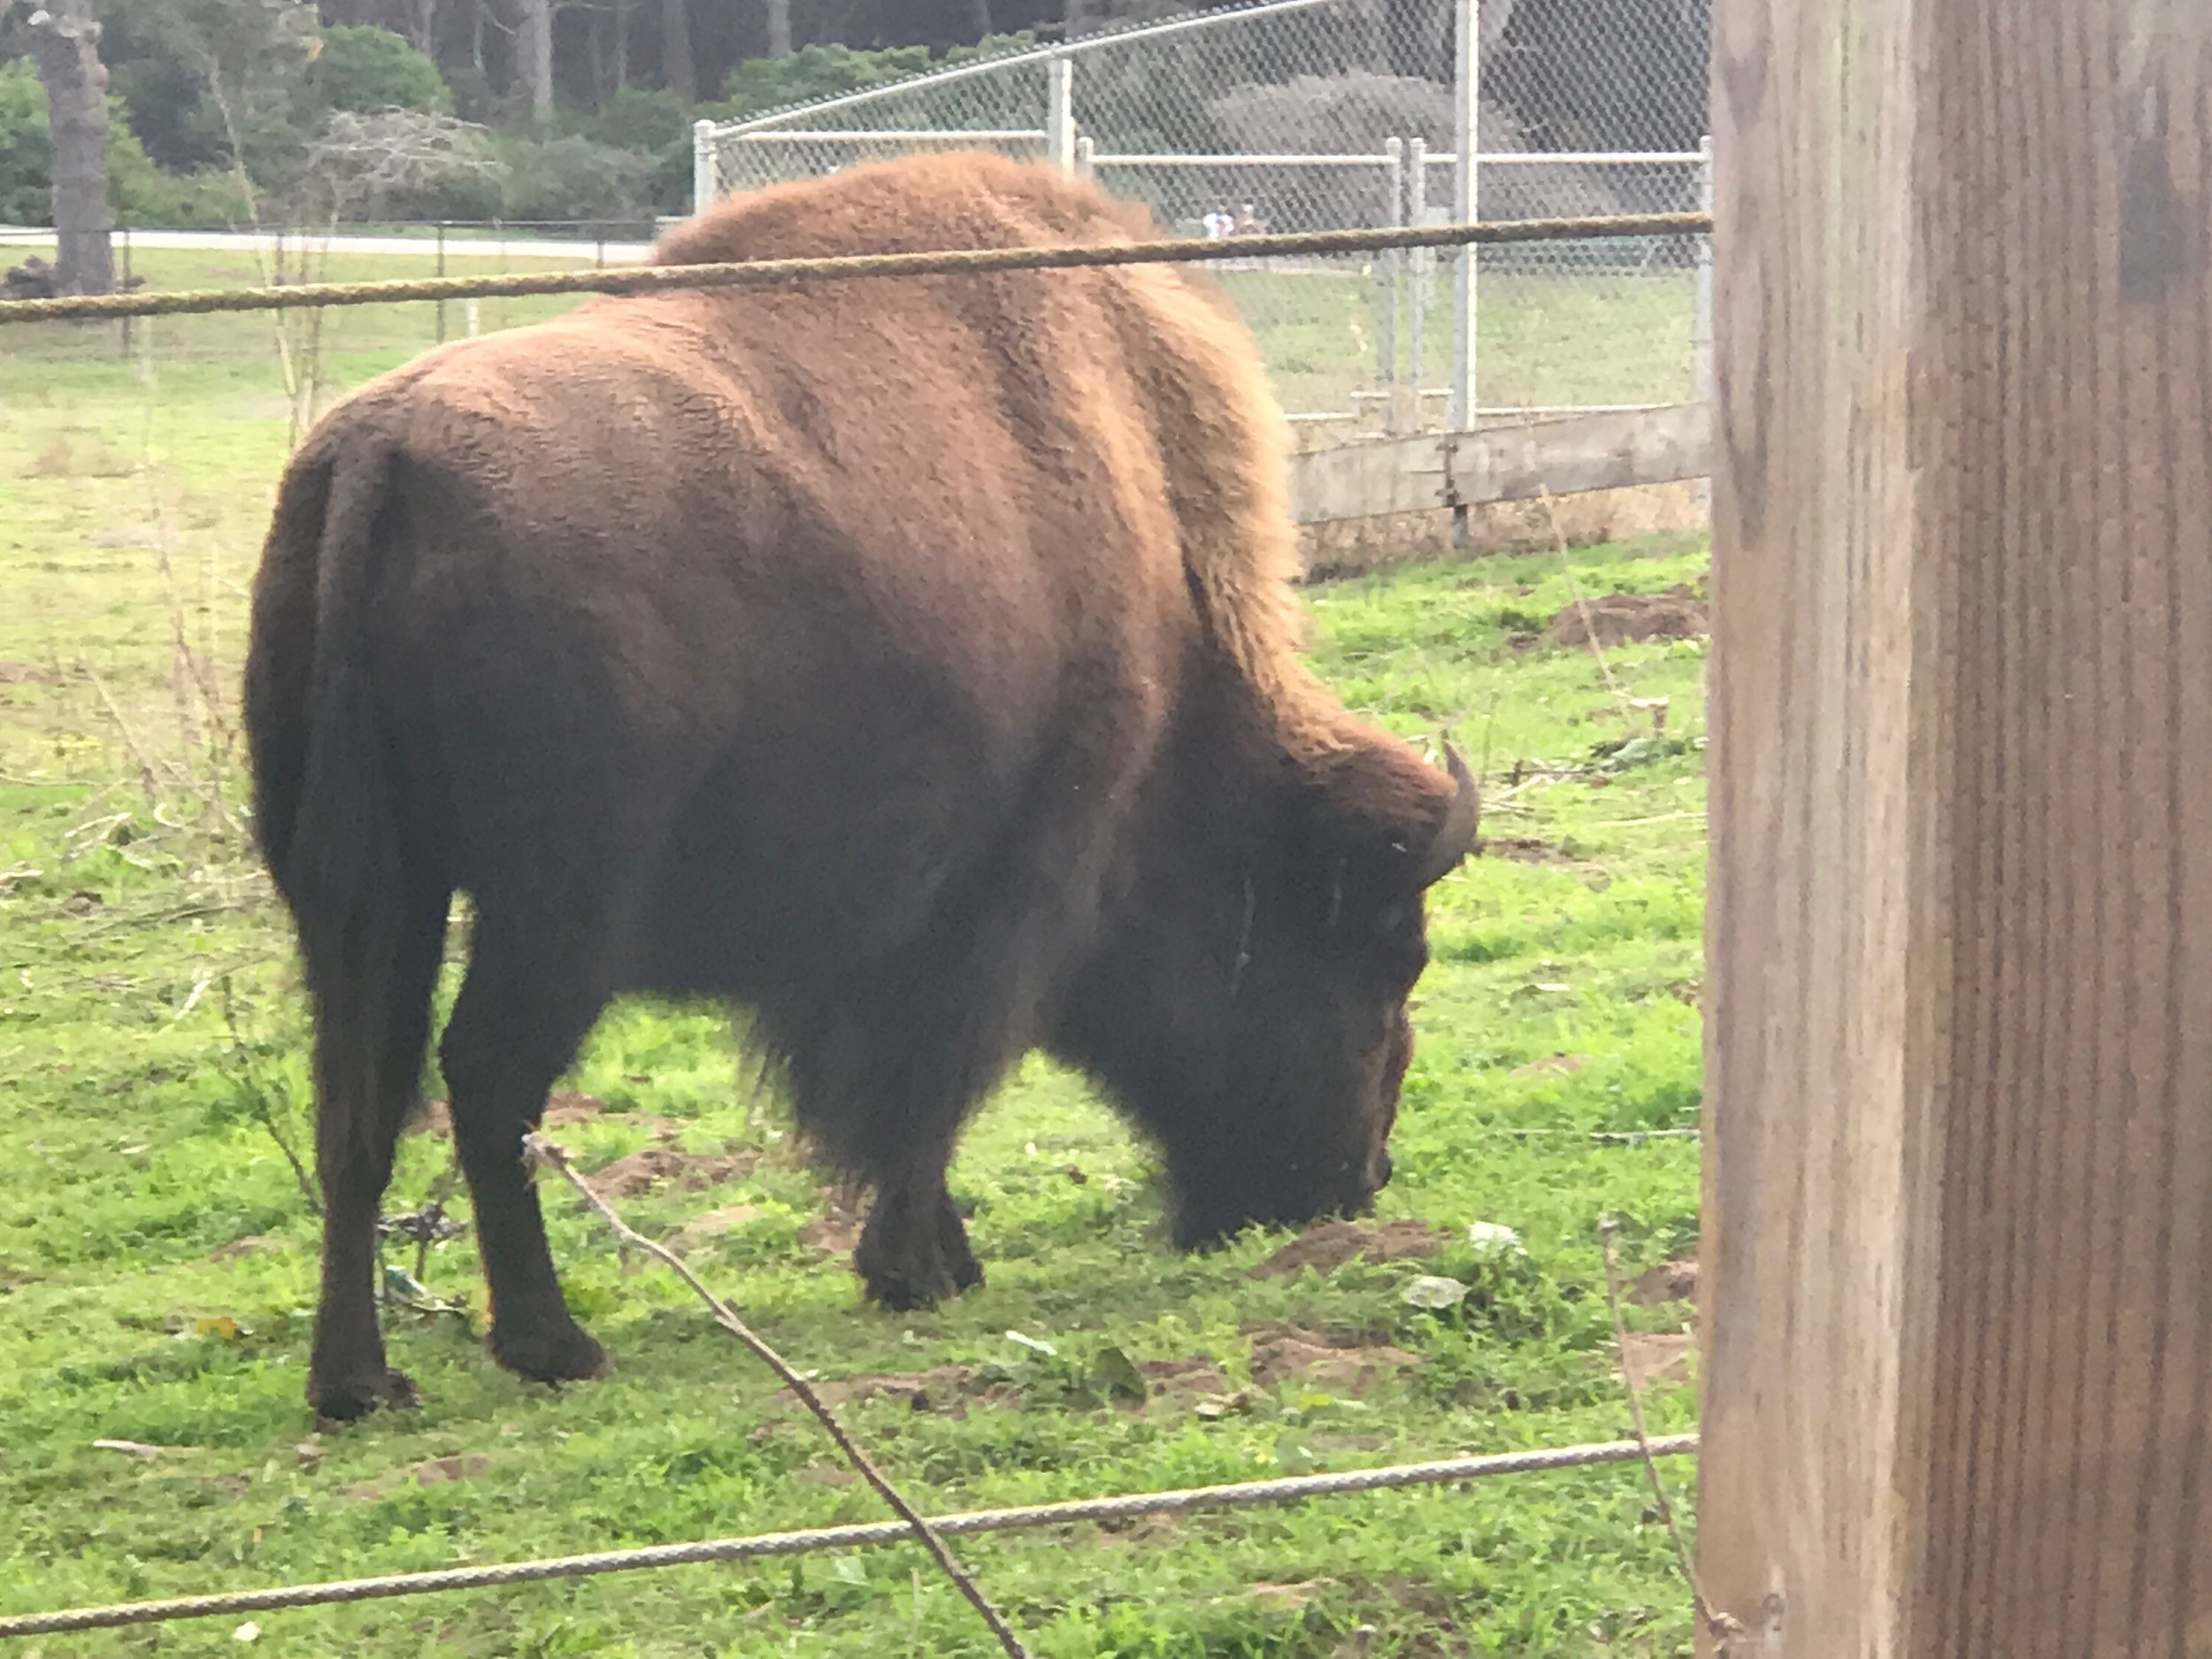 Yes, there's a bison paddock in Golden Gate Park.